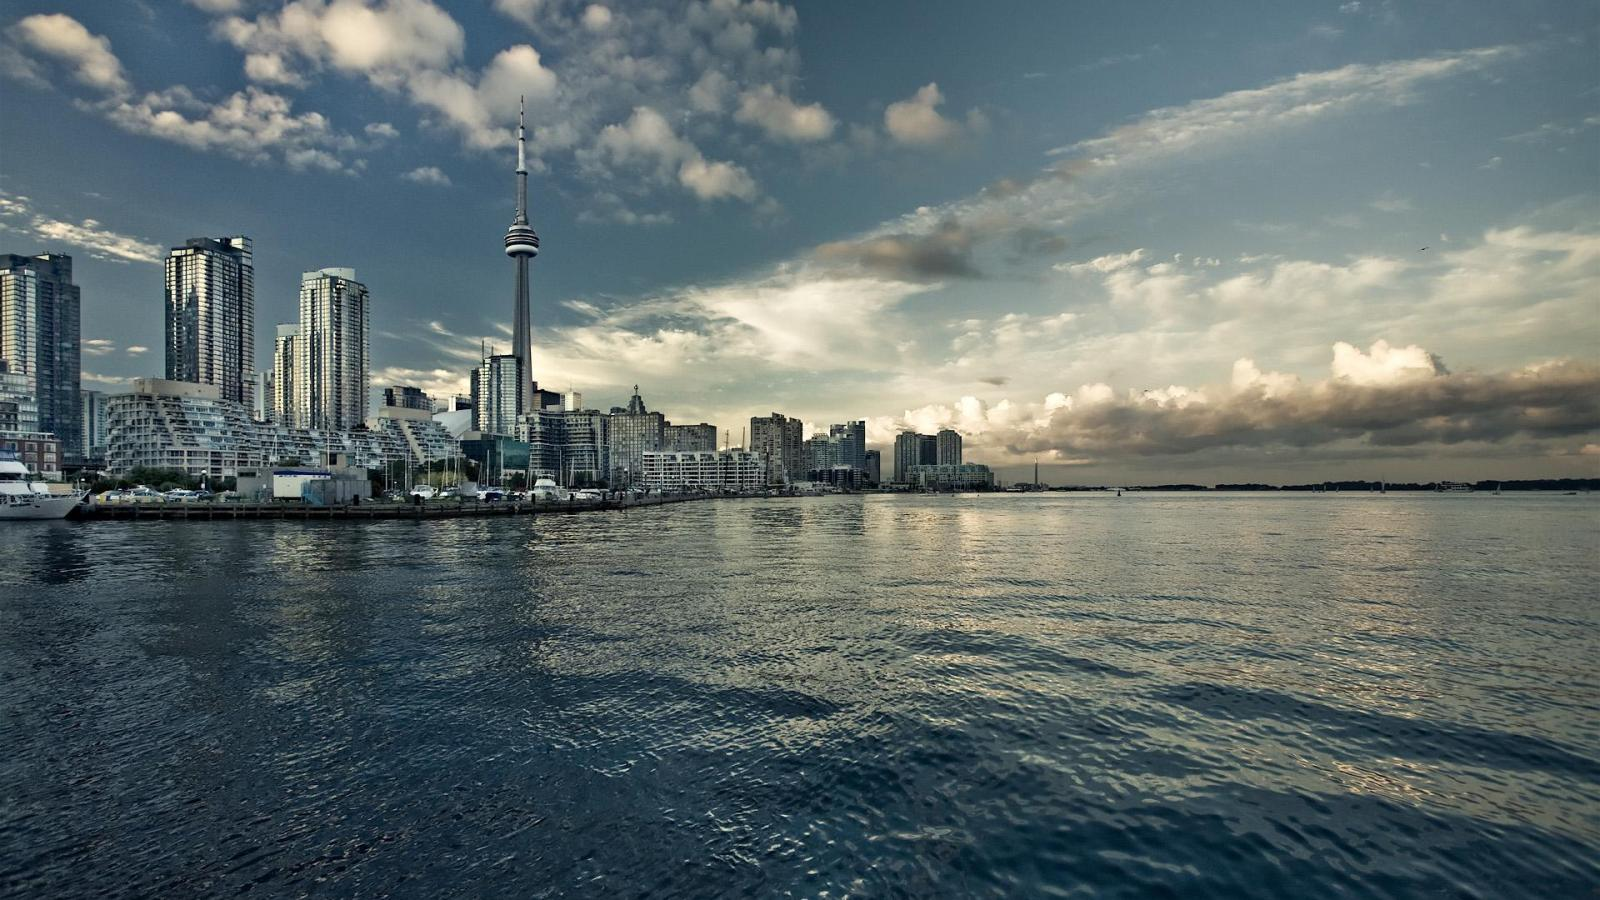 Pin Toronto Canada 1920x1200 Wallpapers Download Desktop Hd on 1600x900